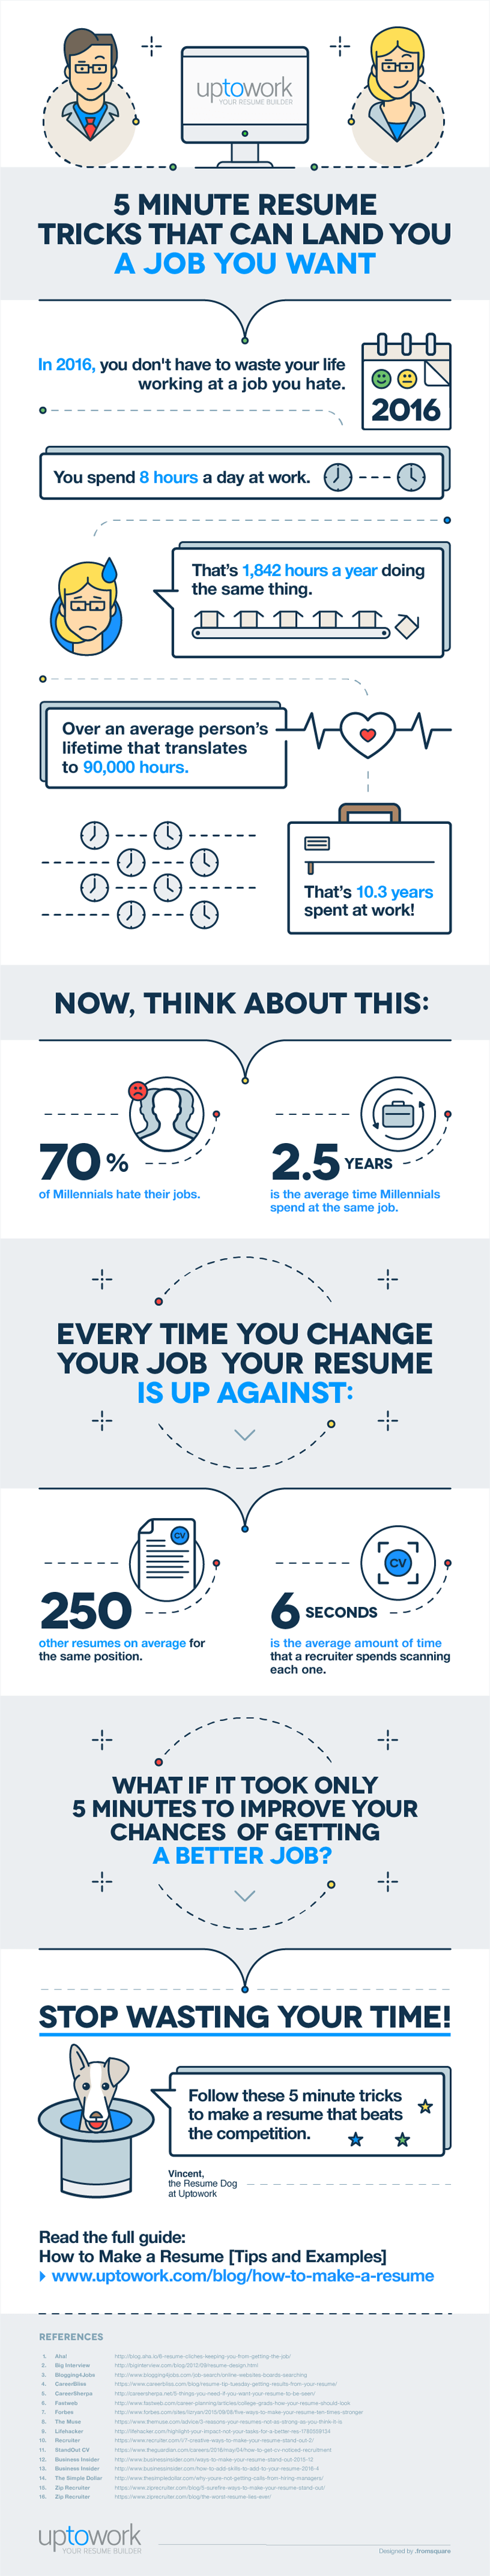 5 Minute Resume Tricks To Land Your Dream Job